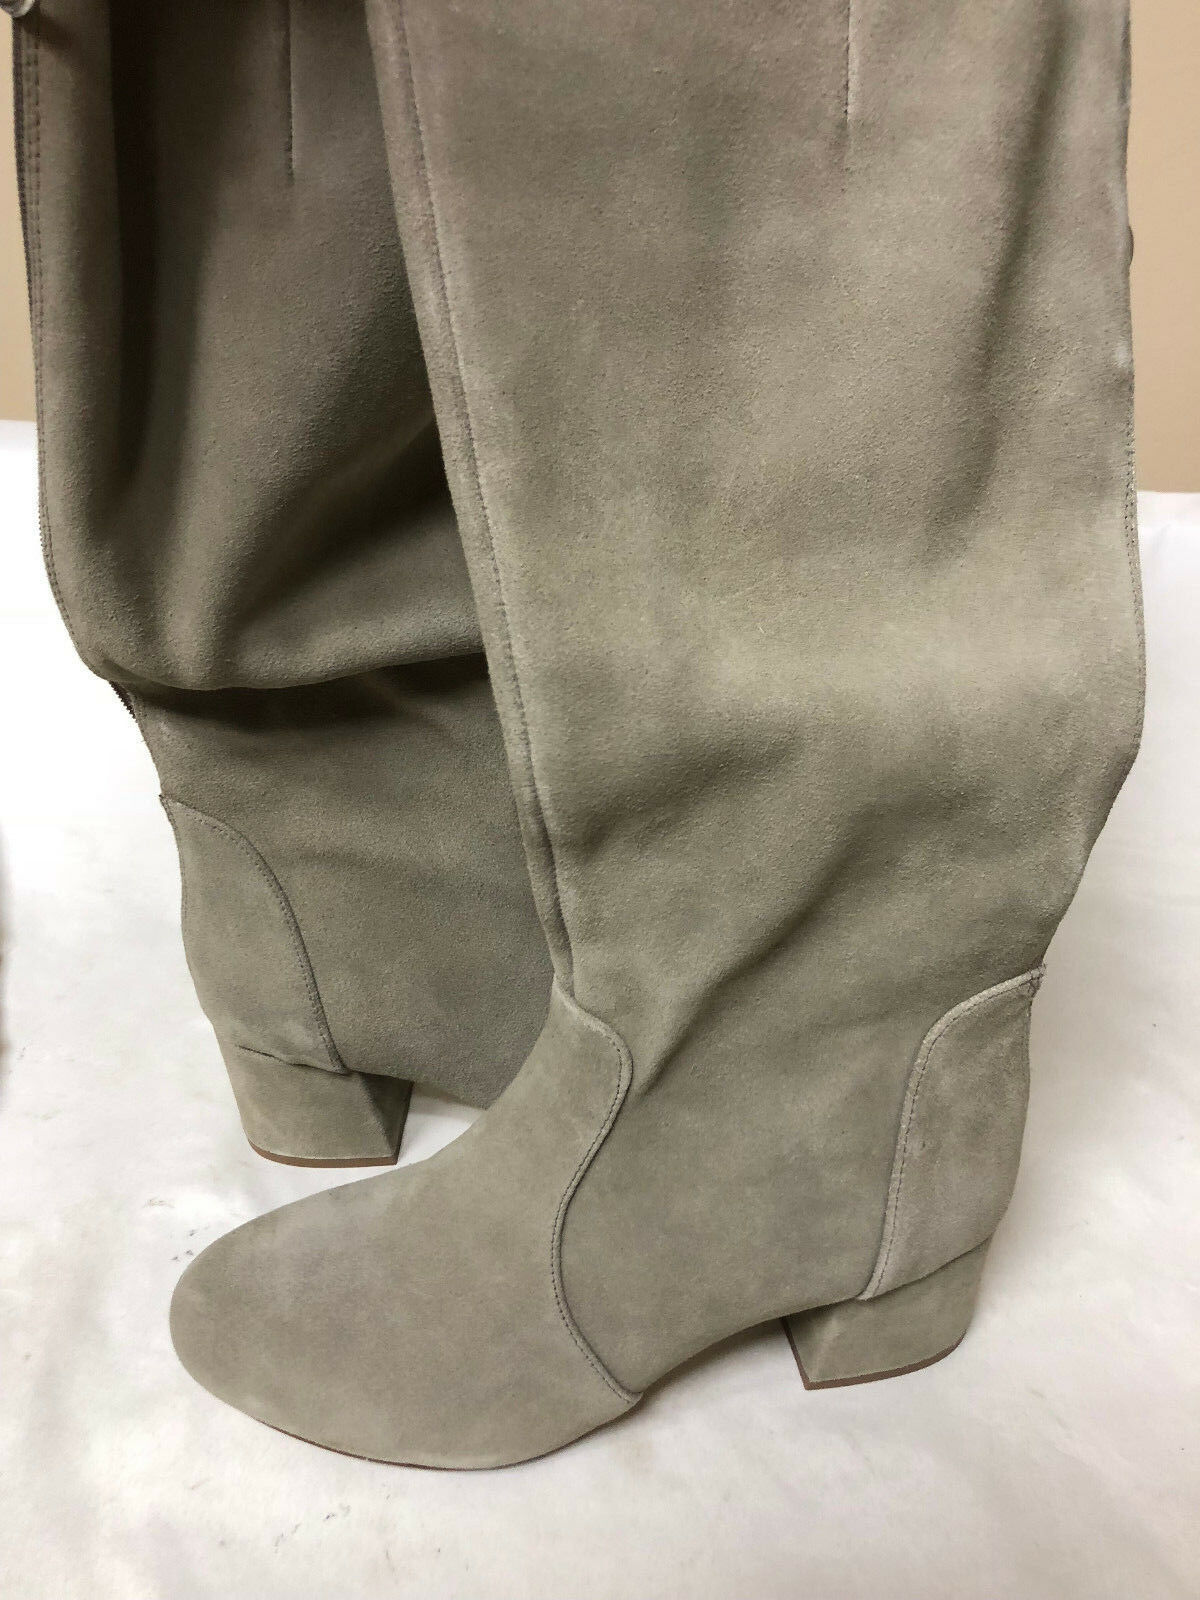 Steve Madden Women's Hanna Harness Boot Taupe Suede 6.5